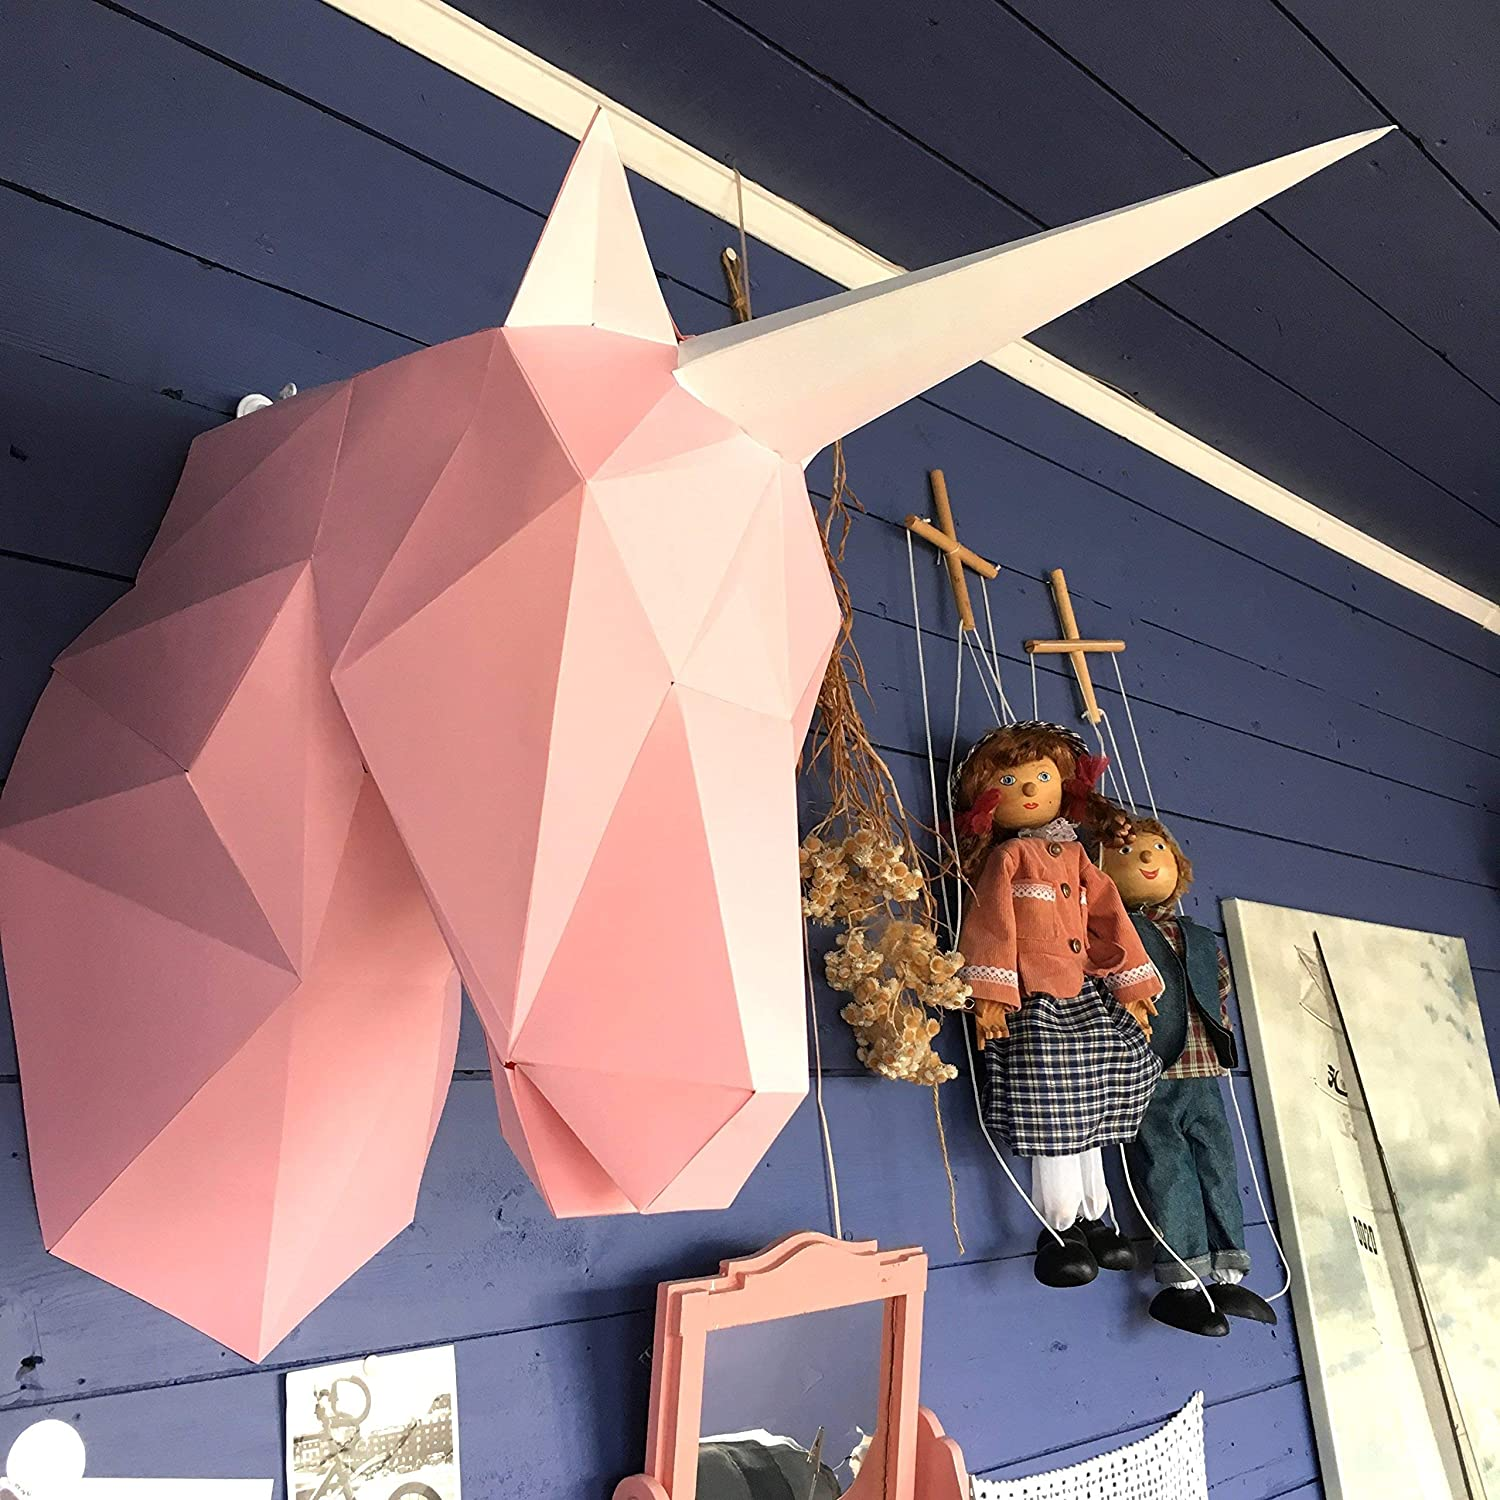 Unicorn 3d papercraft KIT. Kit contains card stock paper template for this DIY (do it yourself) paper sculpture.